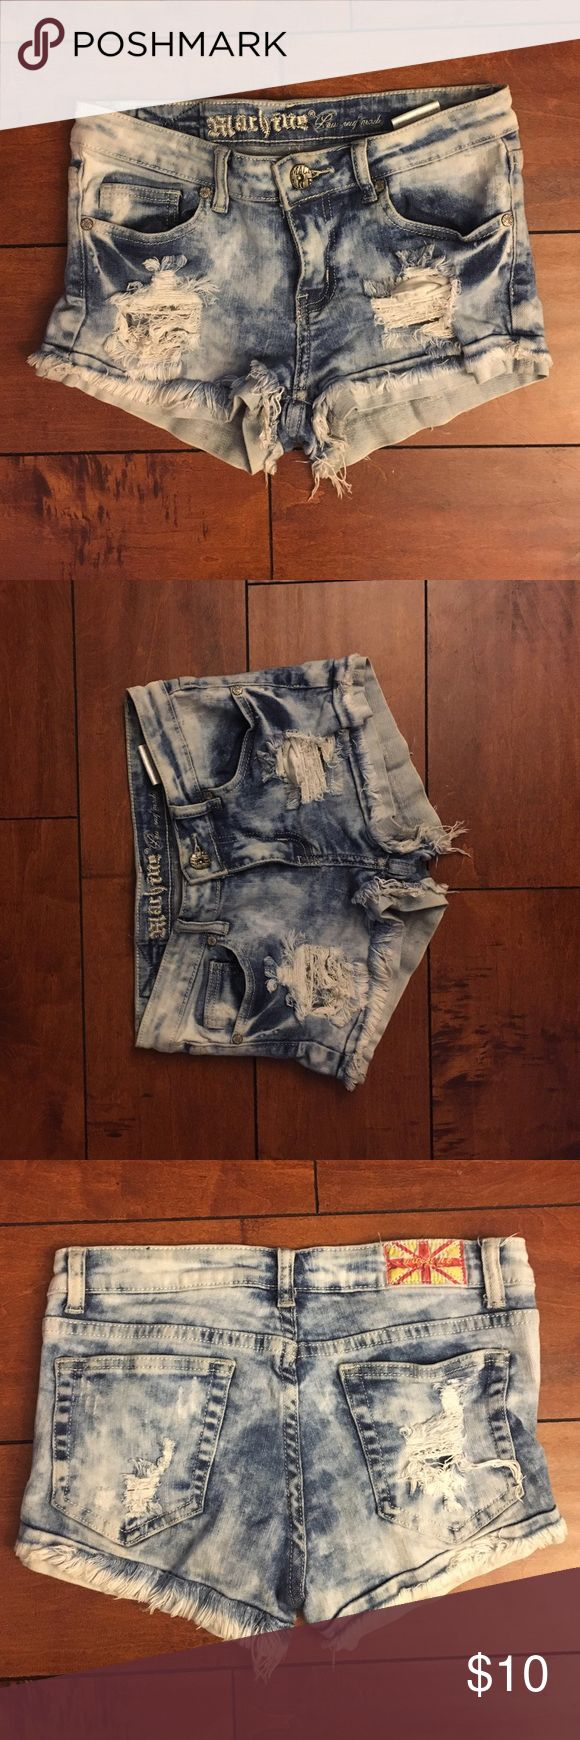 Blue tie-dye Jean shorts size medium Jeans are a size medium. Can fit a size 3 to 5 in juniors Shorts Jean Shorts